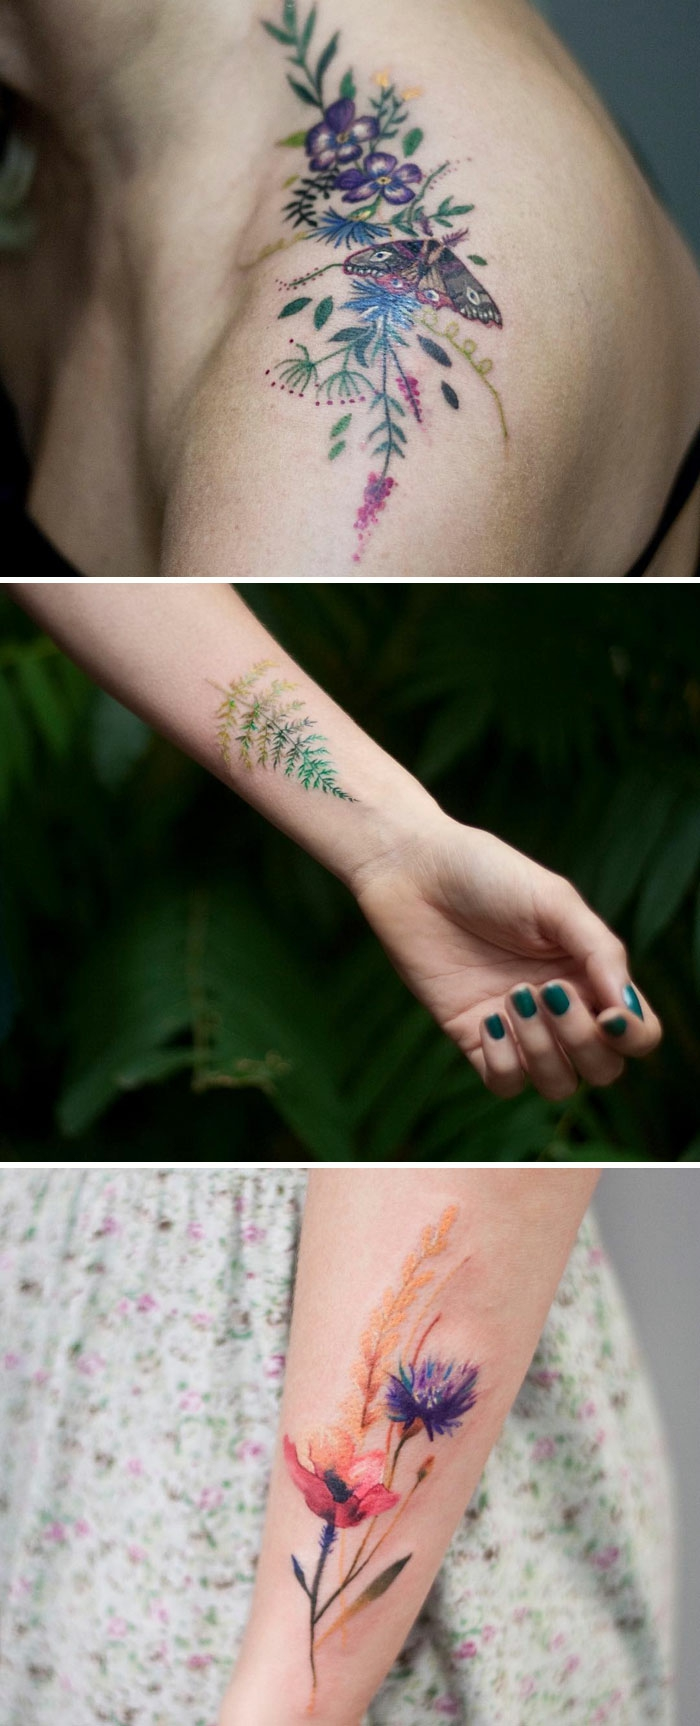 shoulder flower tattoos, with purple, pink and yellow blossoms, green leaves and a butterfly, three-tone fern leaf tattoo near a woman's wrist, water-color effect tattoo, of a poppy and a cornflower, on a person's lower arm